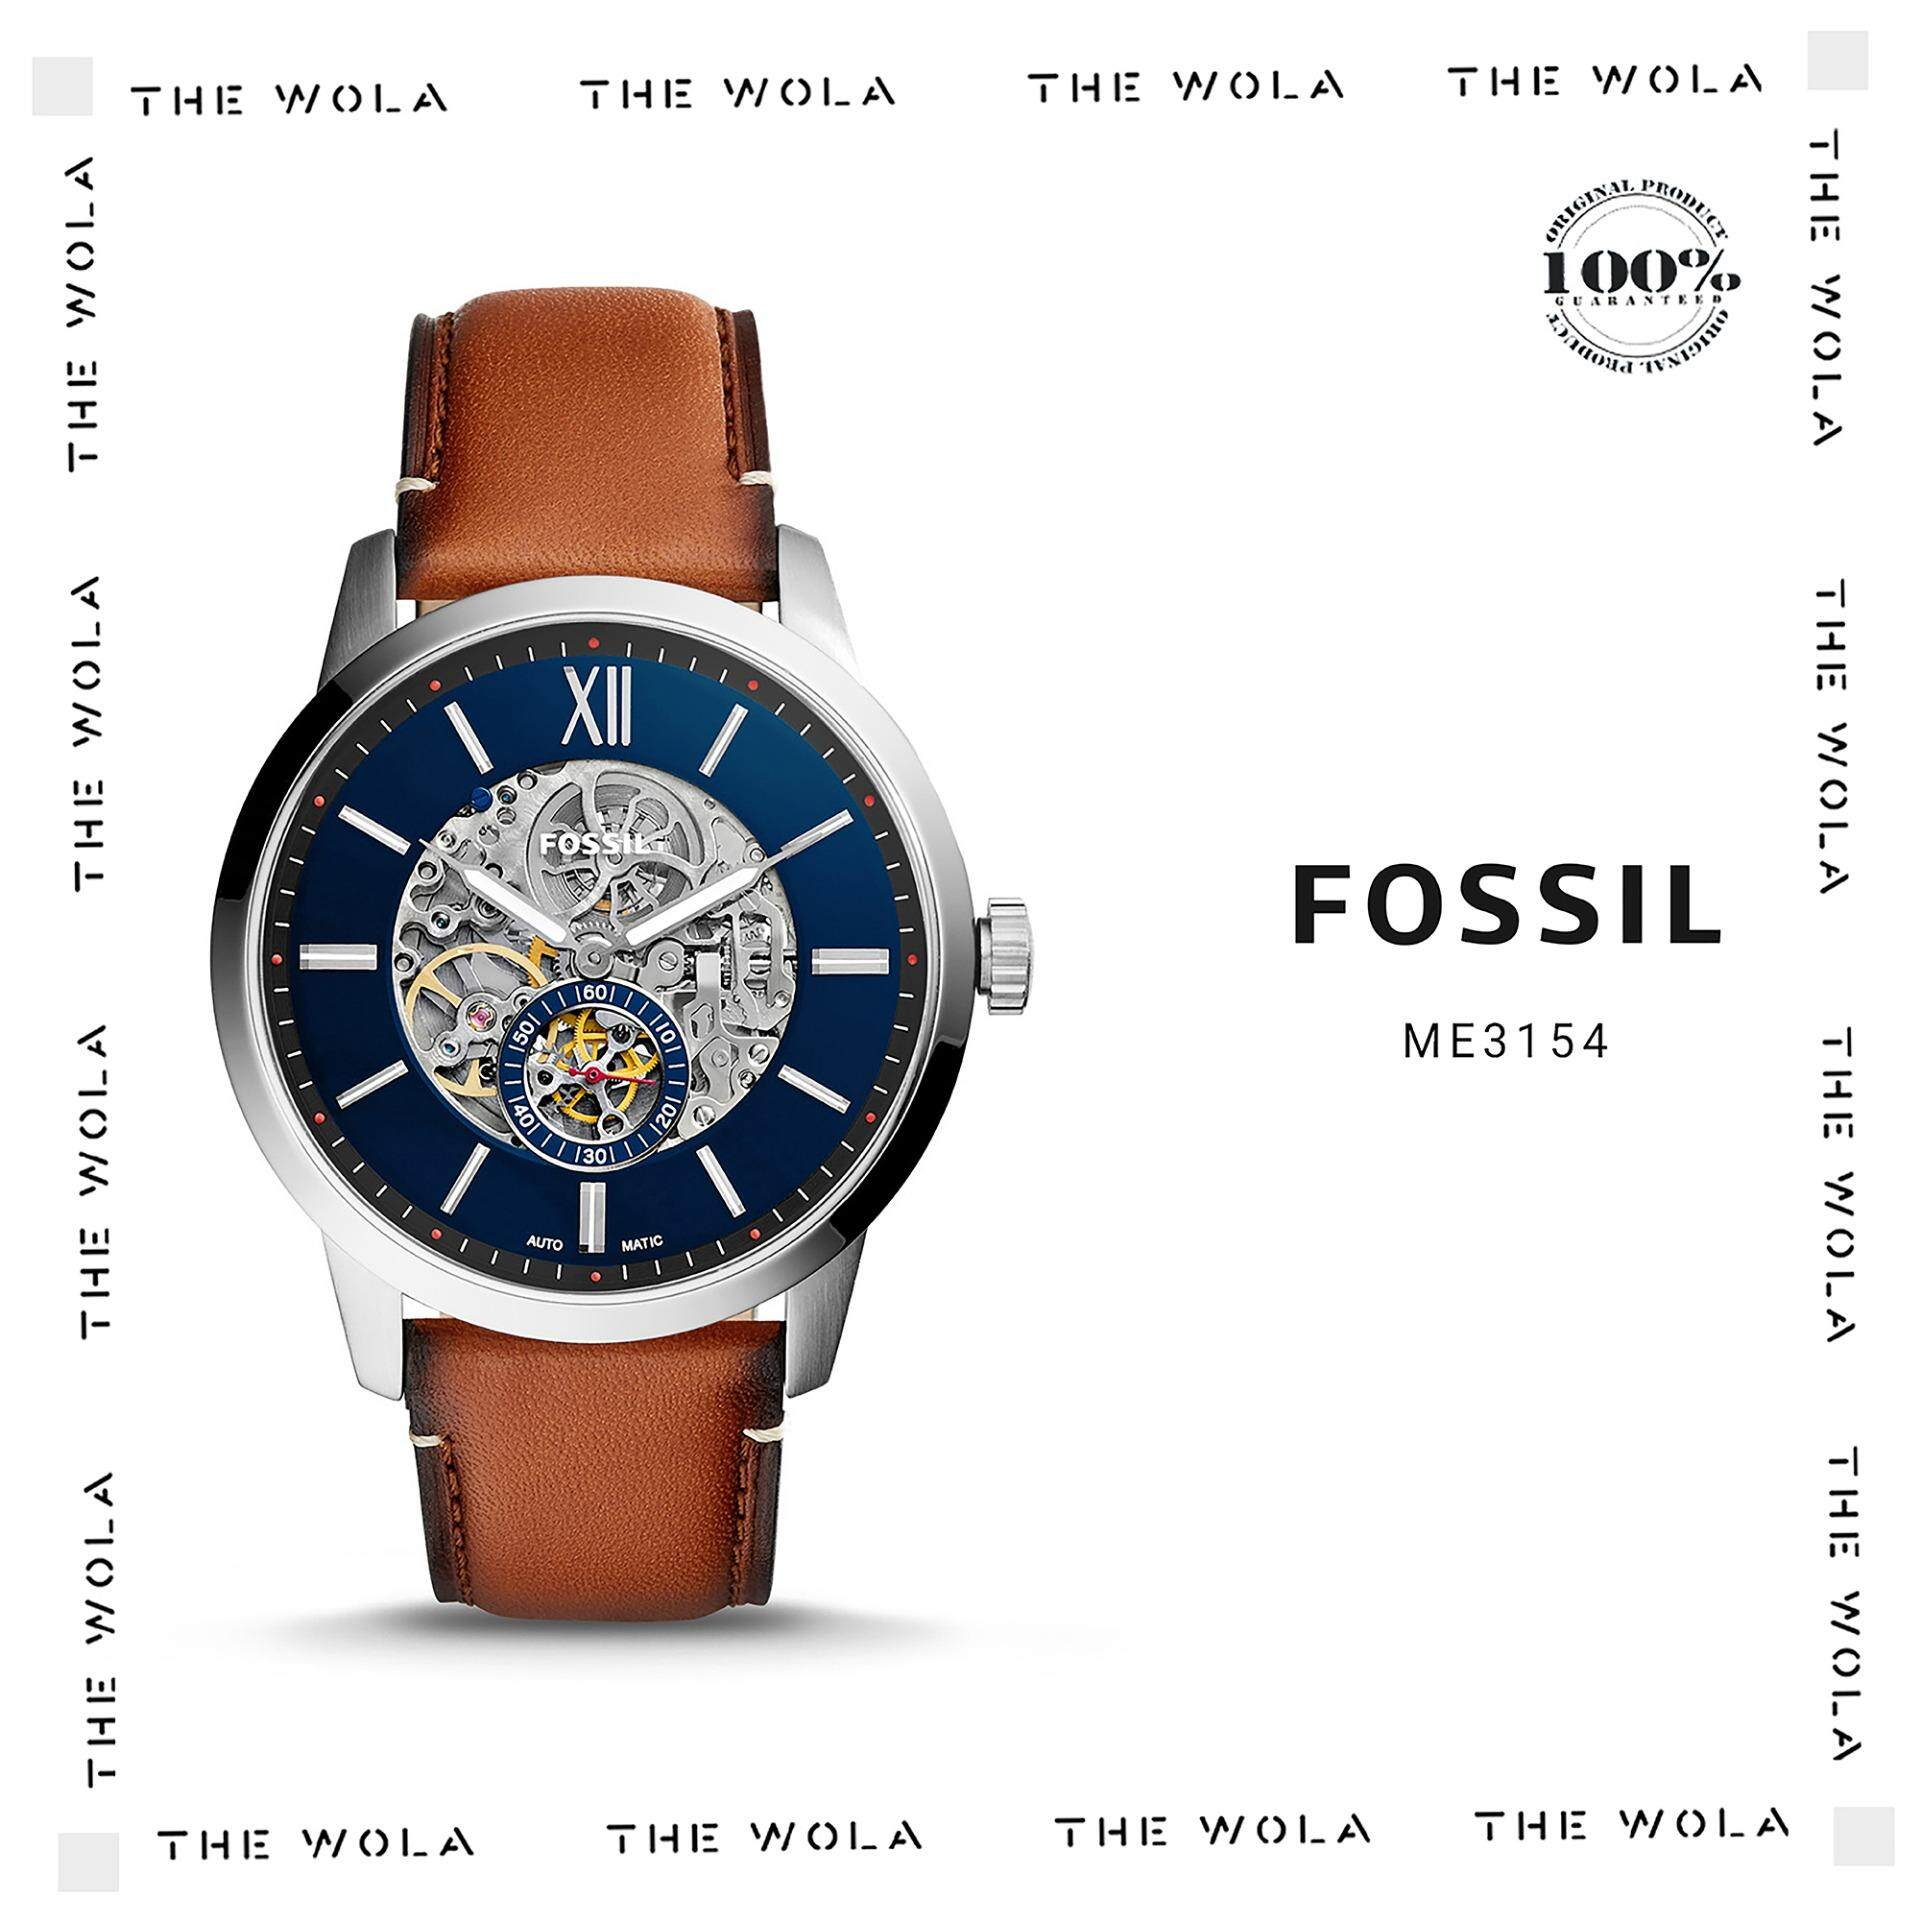 Fossil Products For Men Women The Best Price In Malaysia Me3140 Grant Sport Automatic Skeleton Dial Lugage Leather Watch Me3154 Original Genuine 2 Years Warranty